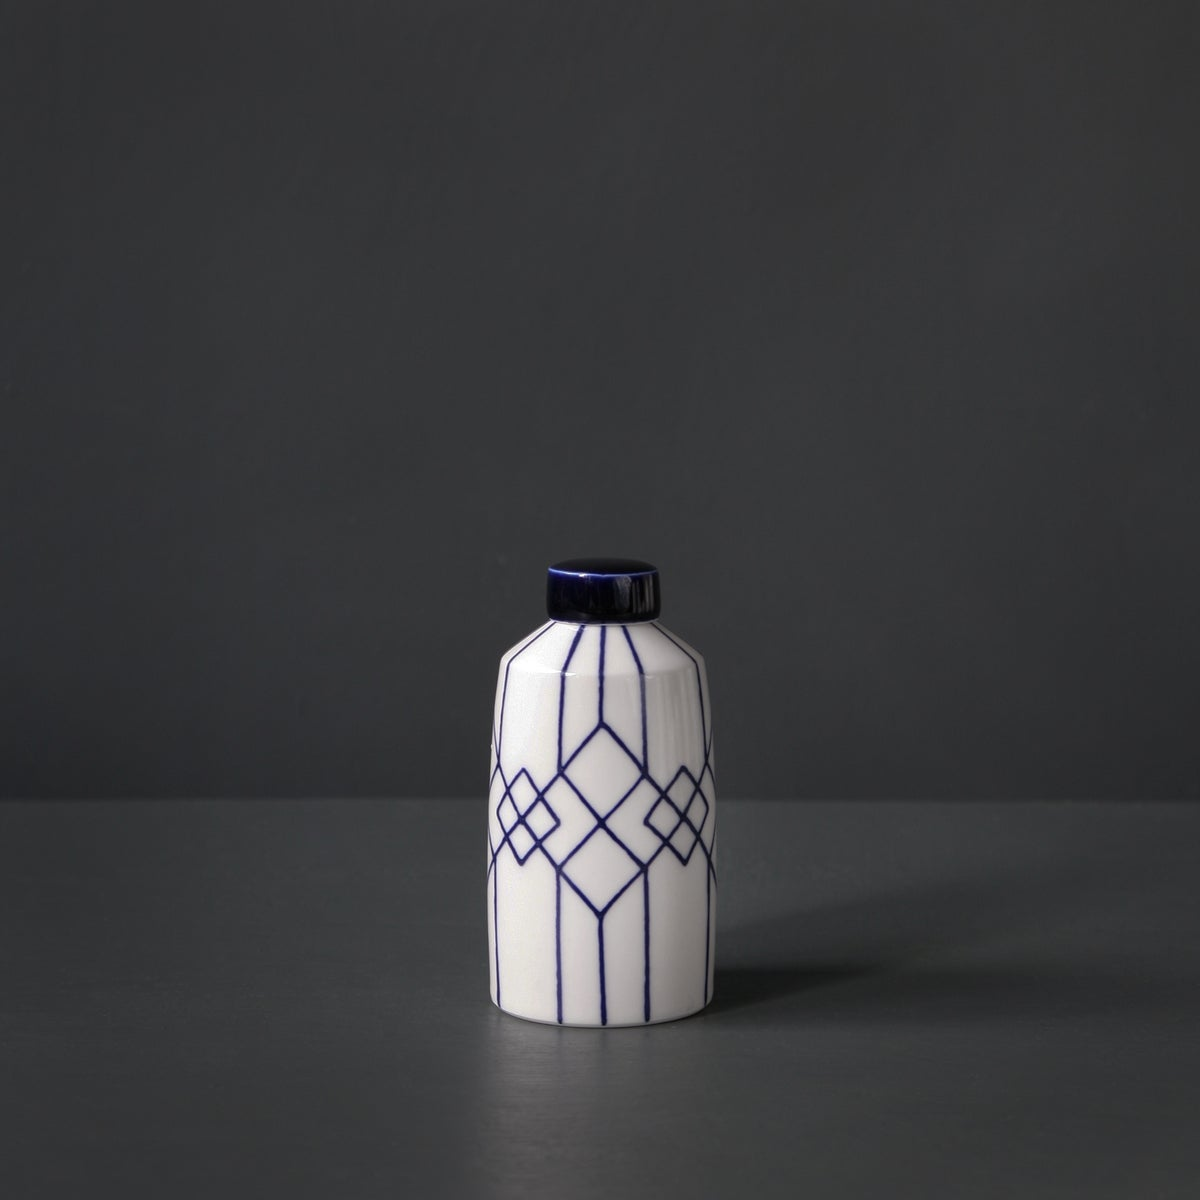 Image of Small 'Zanzibar' straight Ginger Jar by Rhian Malin.